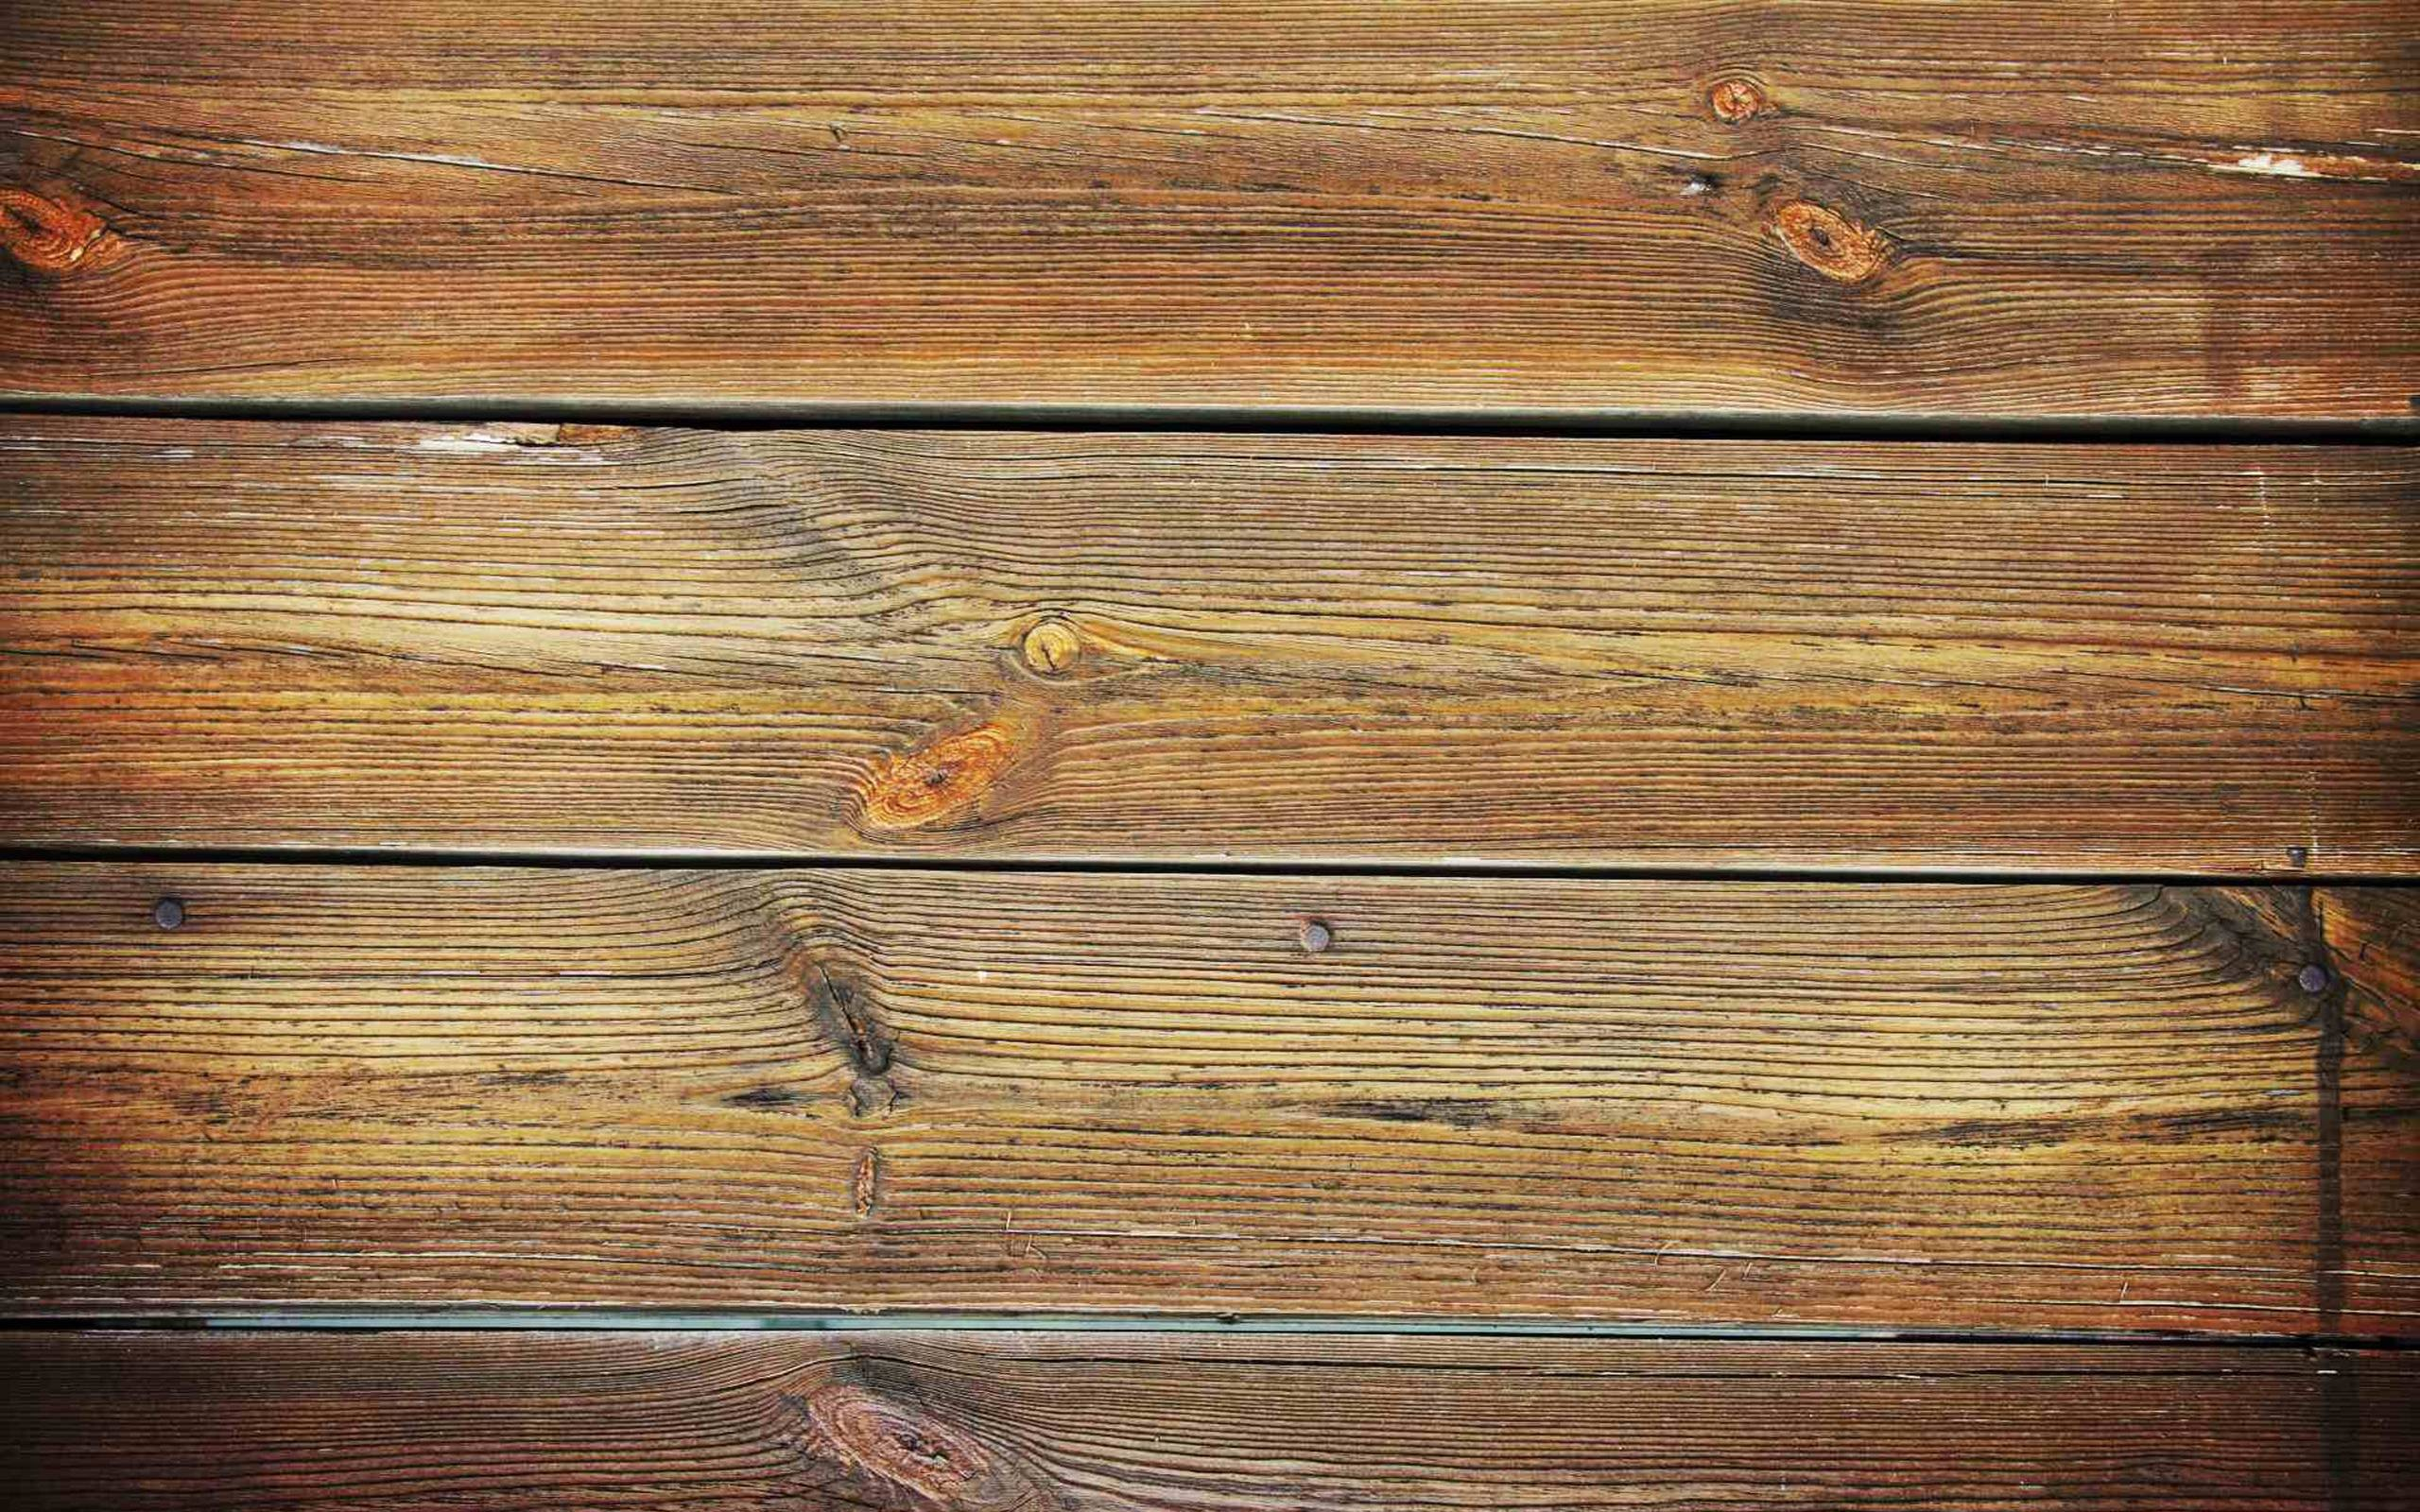 Vintage rustic wood background download free amazing for Wood wallpaper for walls